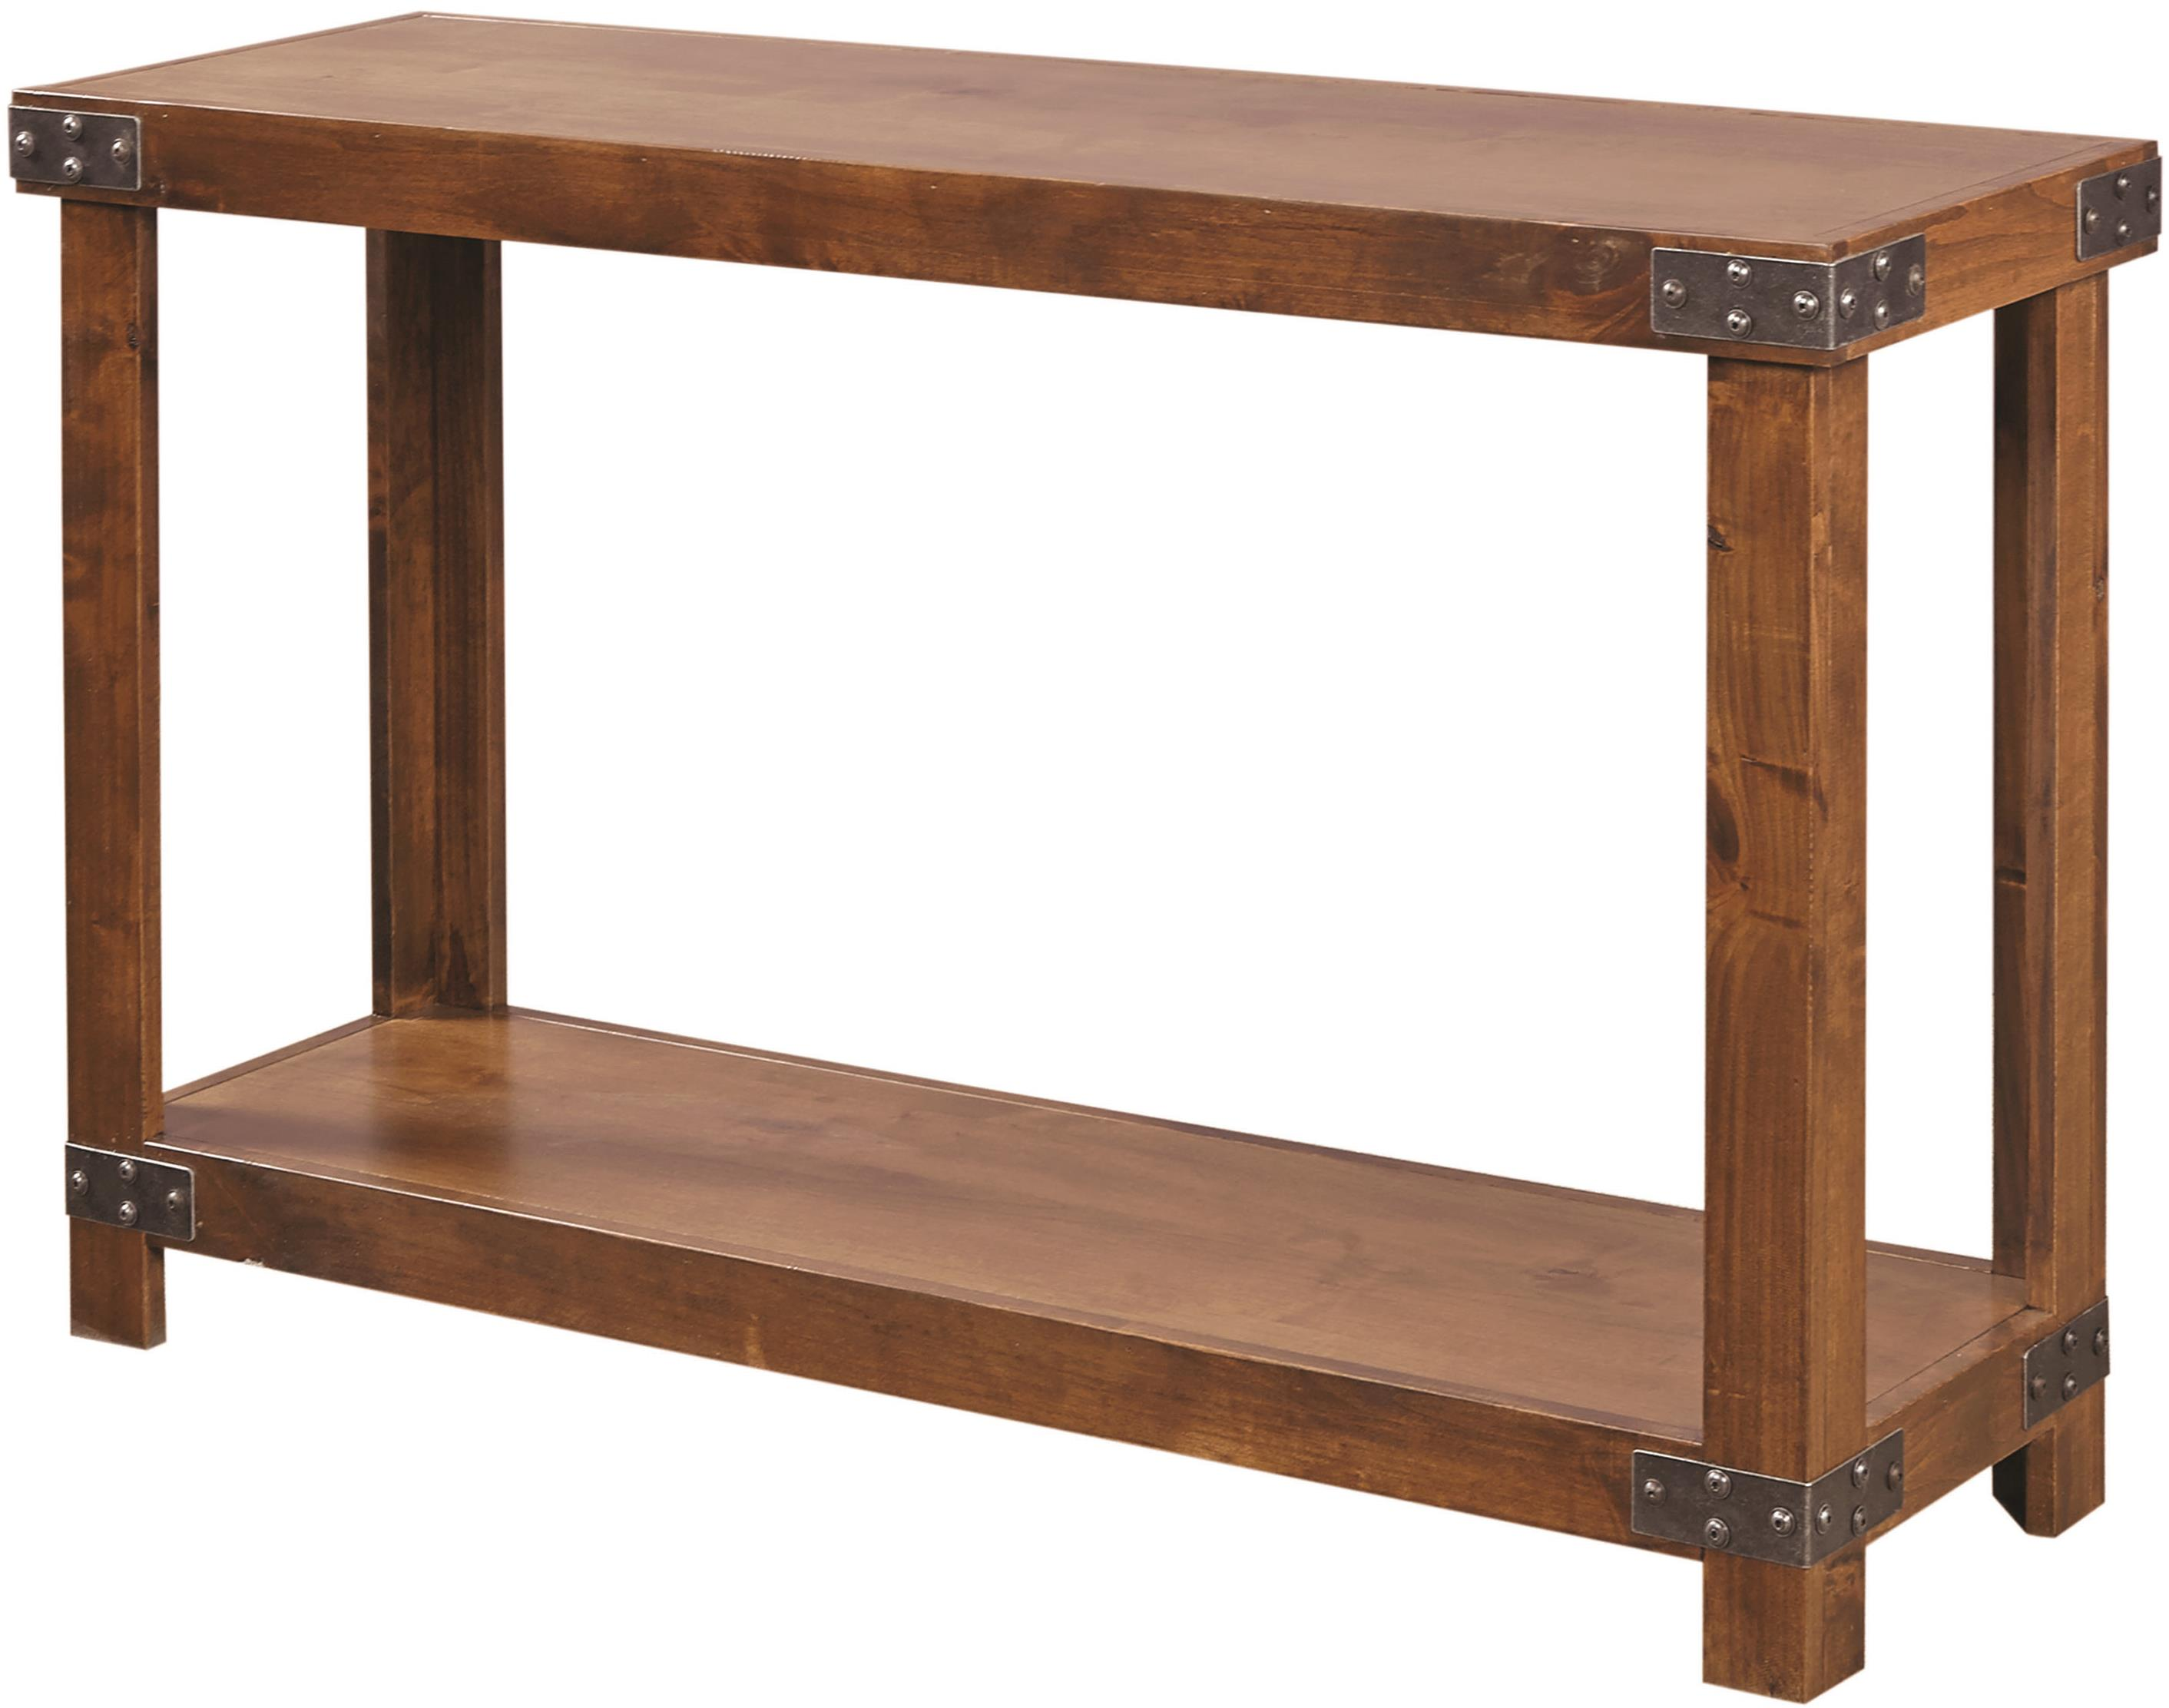 Aspenhome Industrial Sofa Table  - Item Number: DN915-FRT